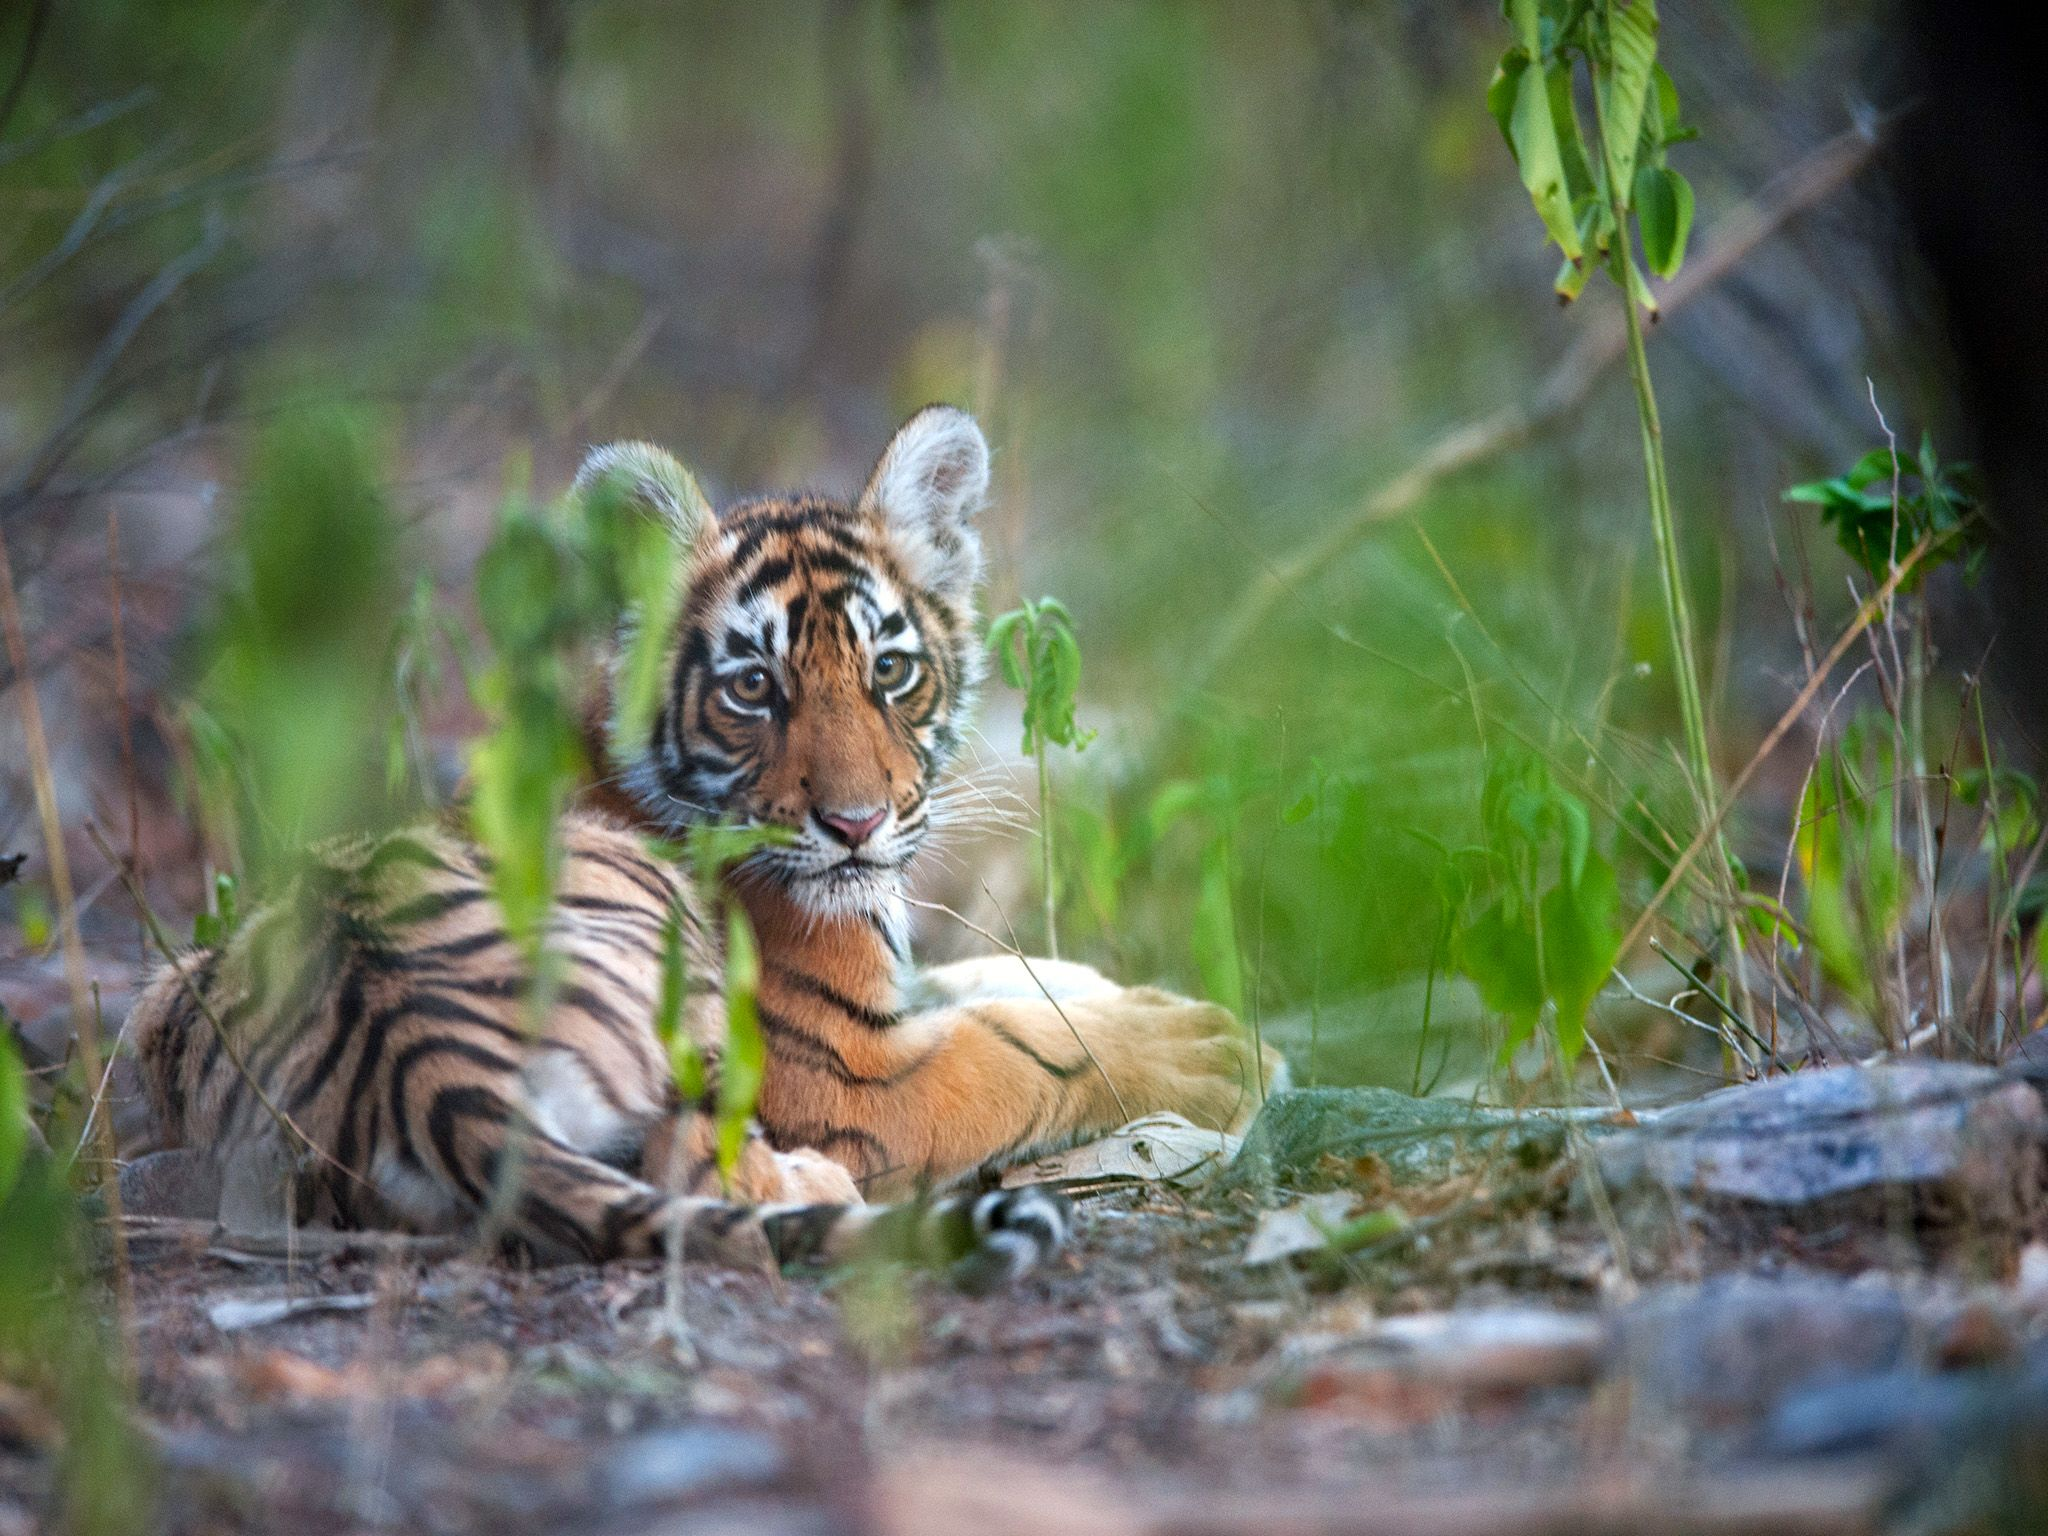 Rajbagh Area, Ranthambore National Park: Sundari's cub.  This image is from Tiger's Revenge. [Photo of the day - فوریه 2015]